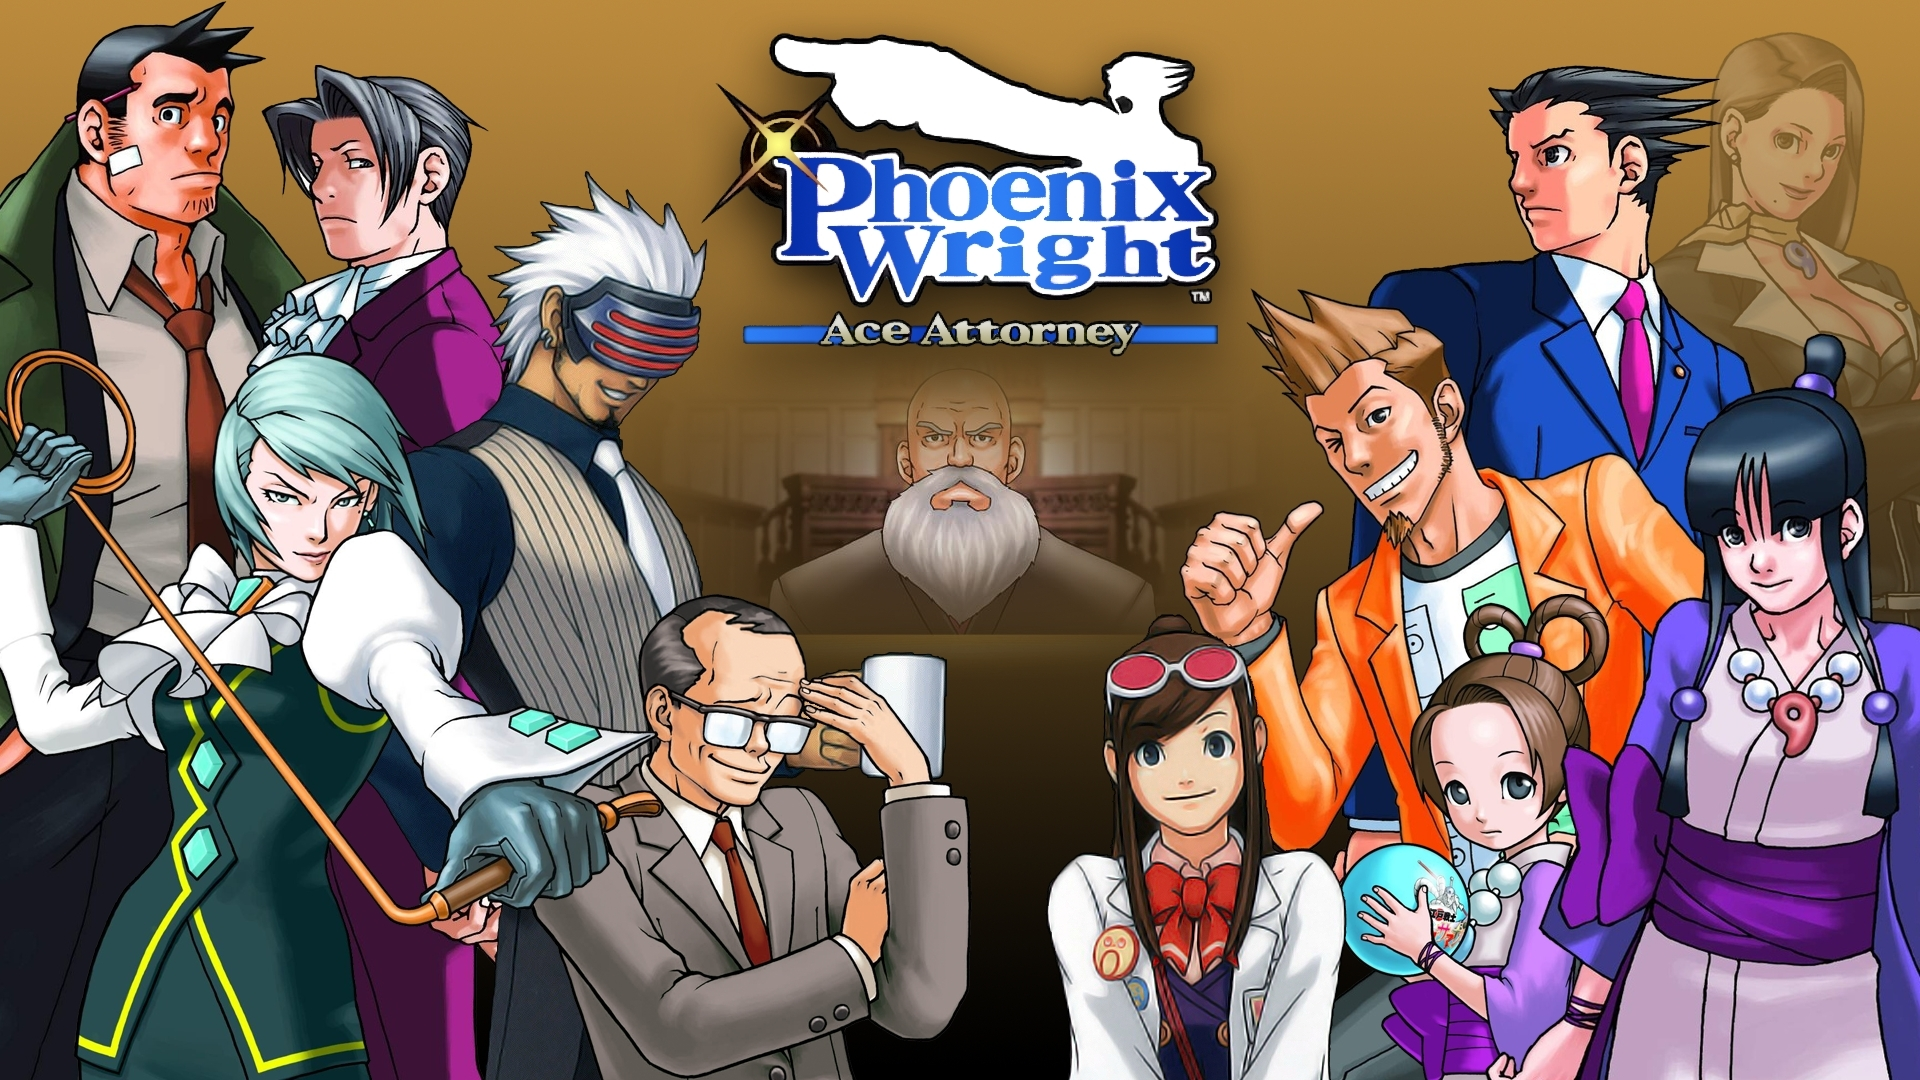 Phoenix Wright Images Wallpaper 2 HD And Background Photos